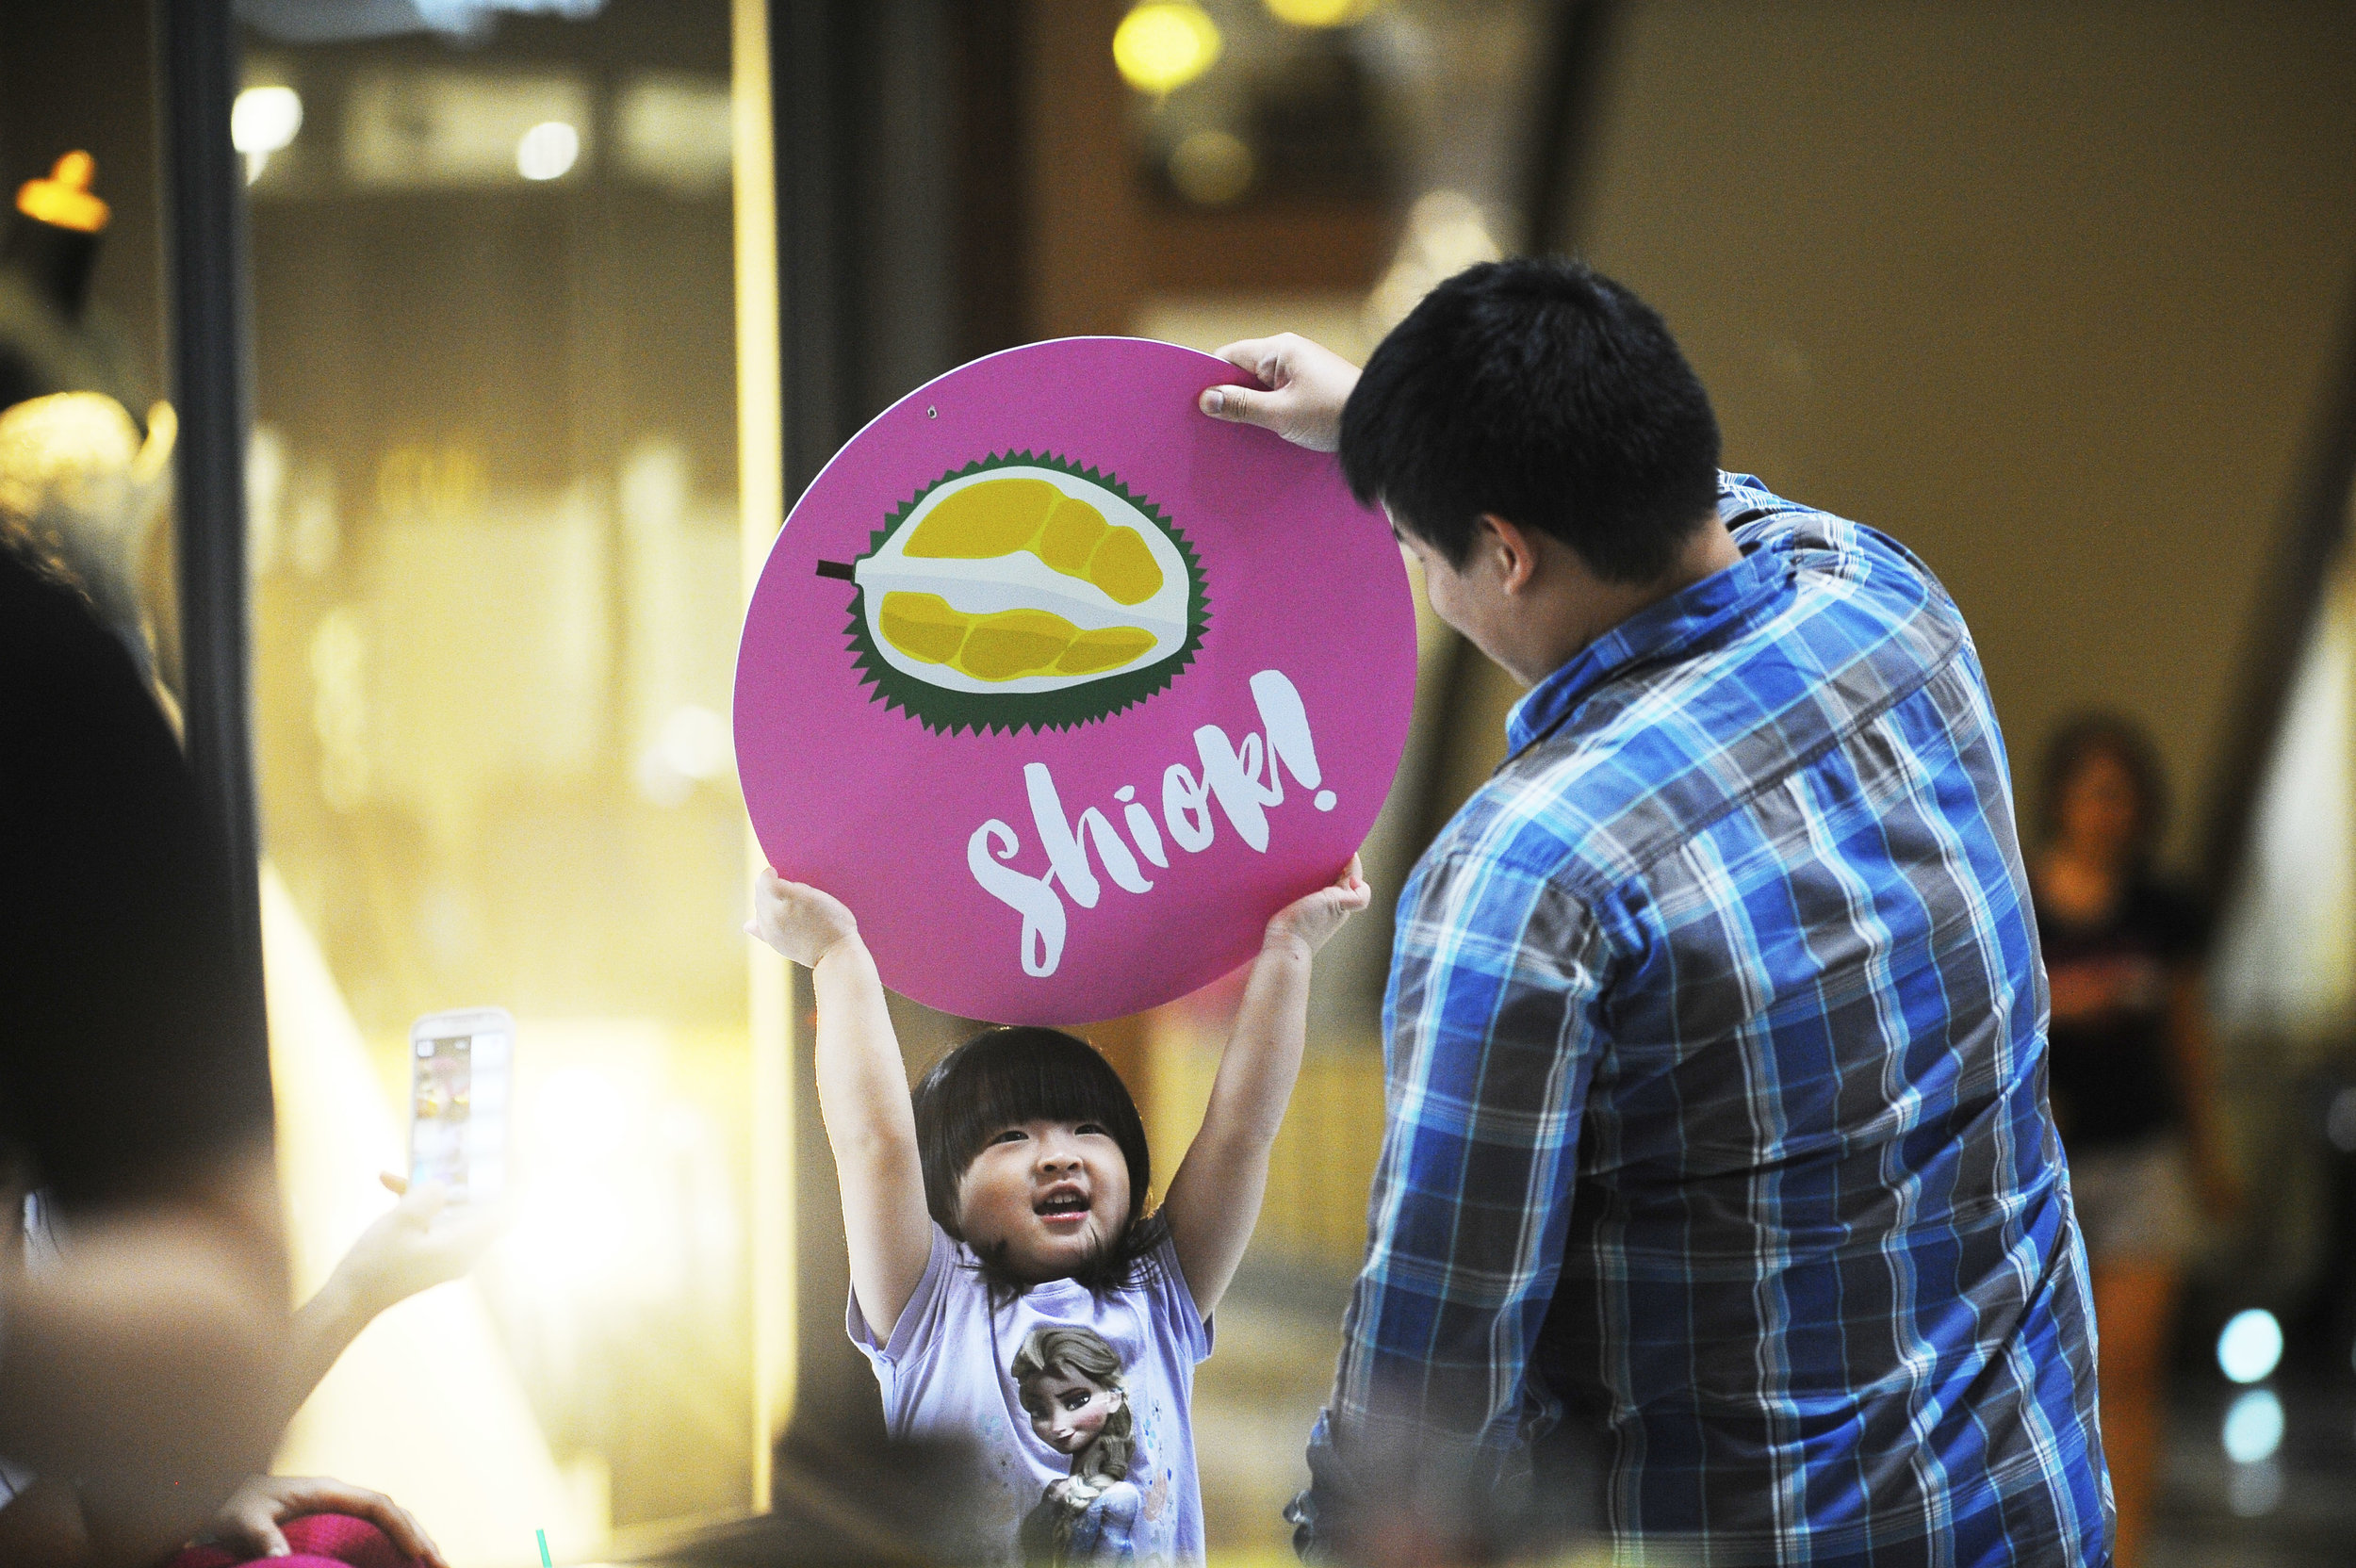 outeredit - millenia walk loves local - shiok